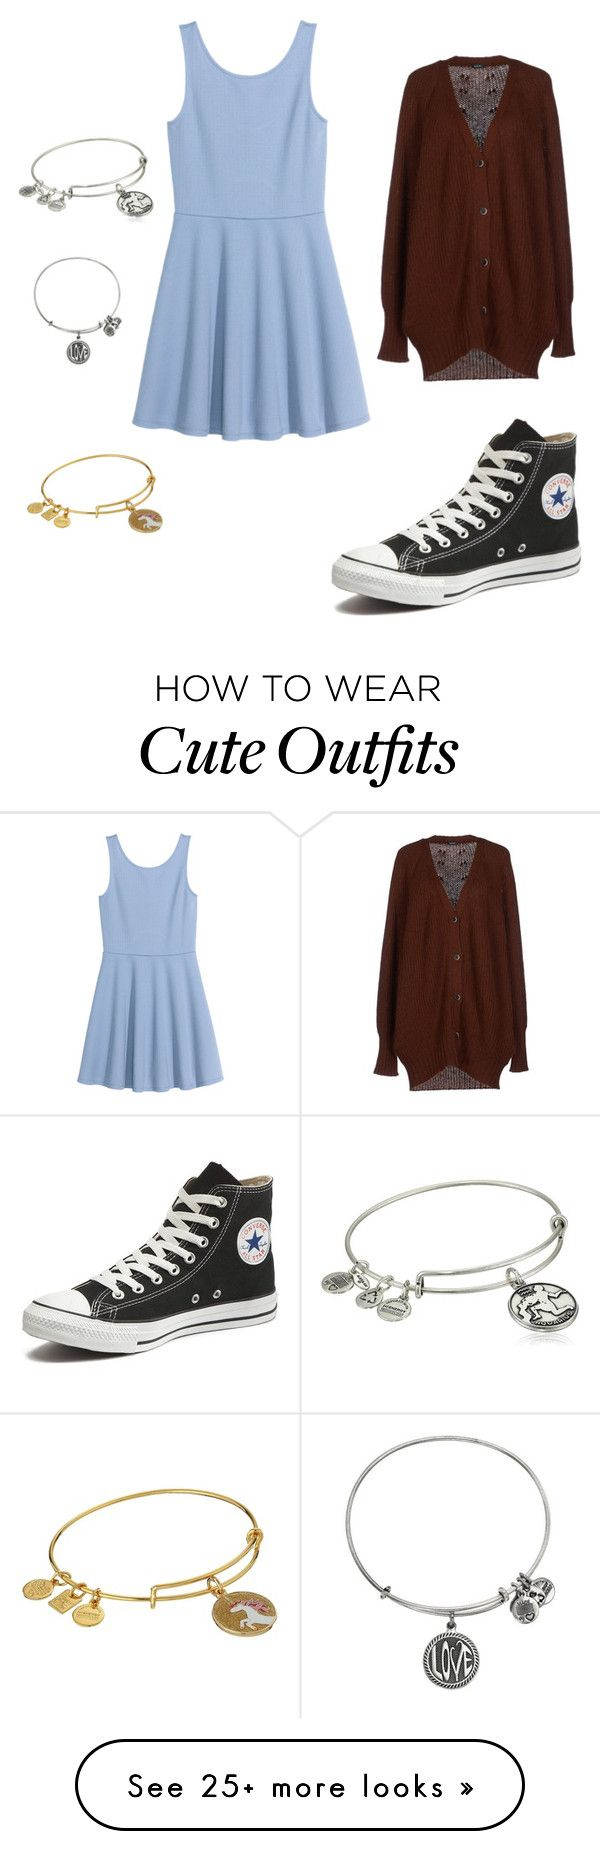 """Cute School Outfit"" by oliviamca on Polyvore featuring Zanone, Converse, Alex and Ani, women's clothing, women's fashion, women, female, woman, misses and juniors"